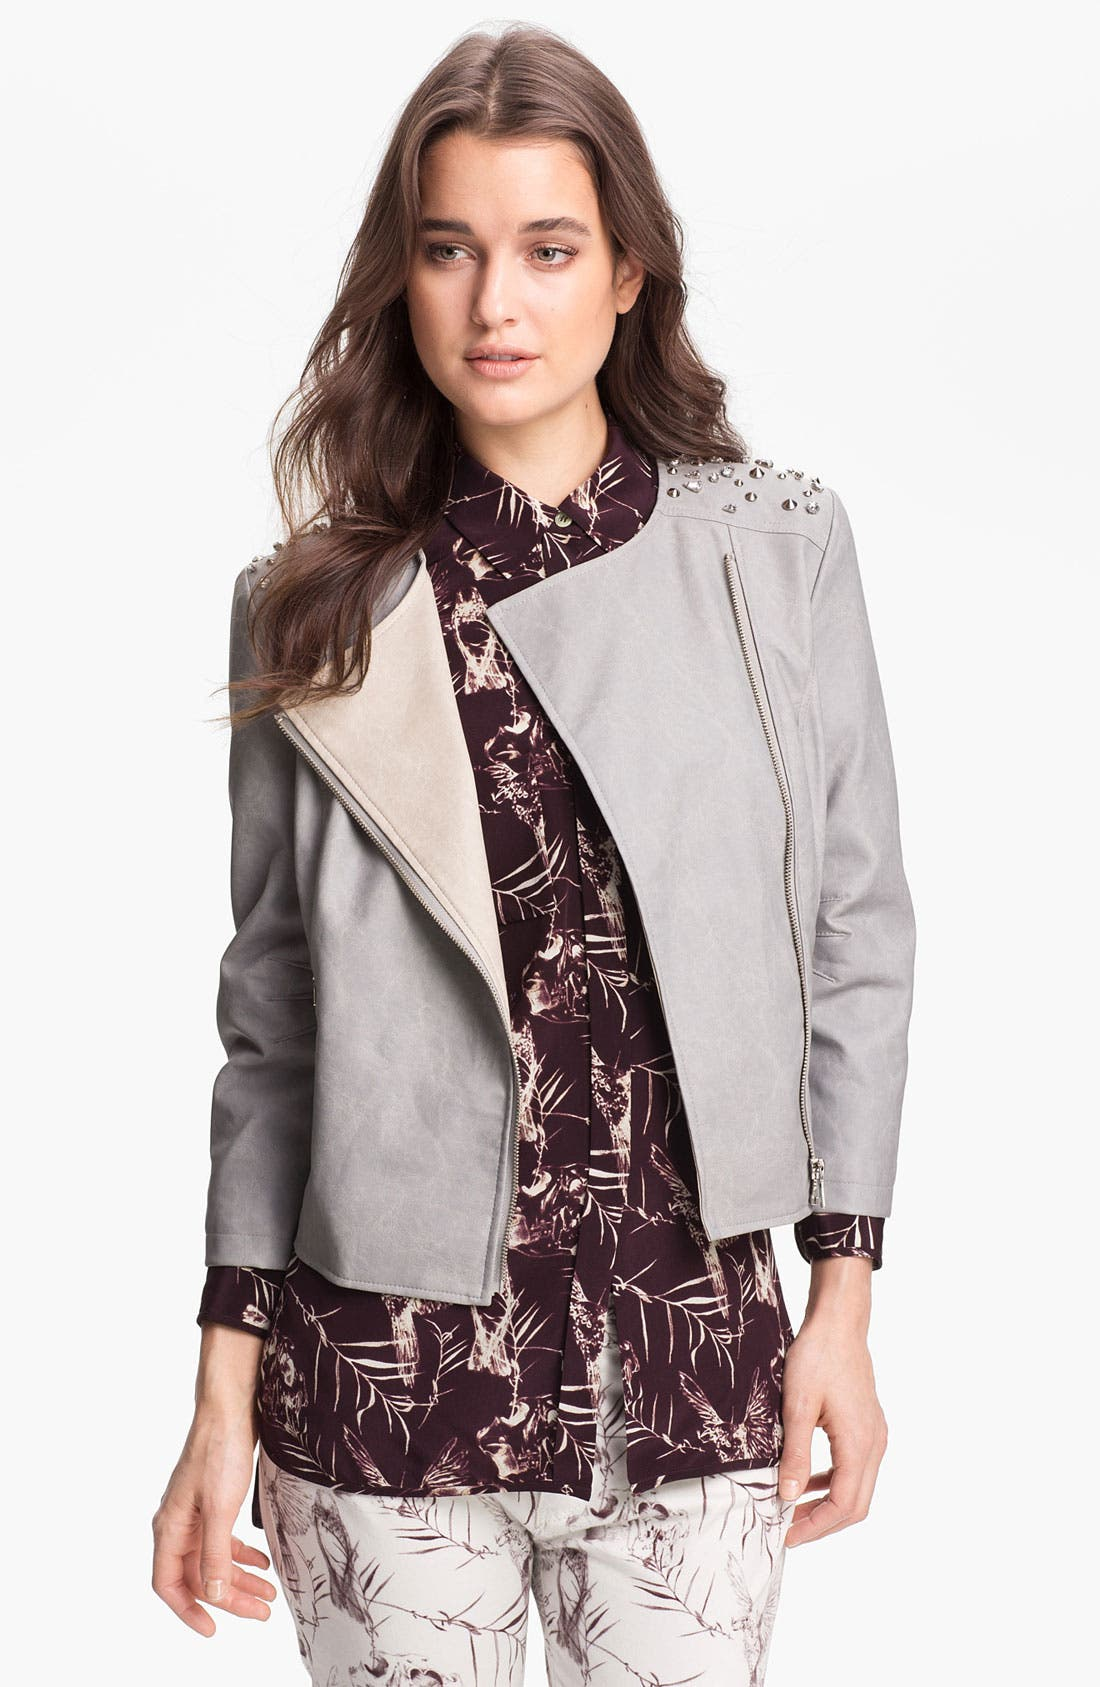 Alternate Image 1 Selected - Sam Edelman Embellished Faux Leather Jacket (Online Only)